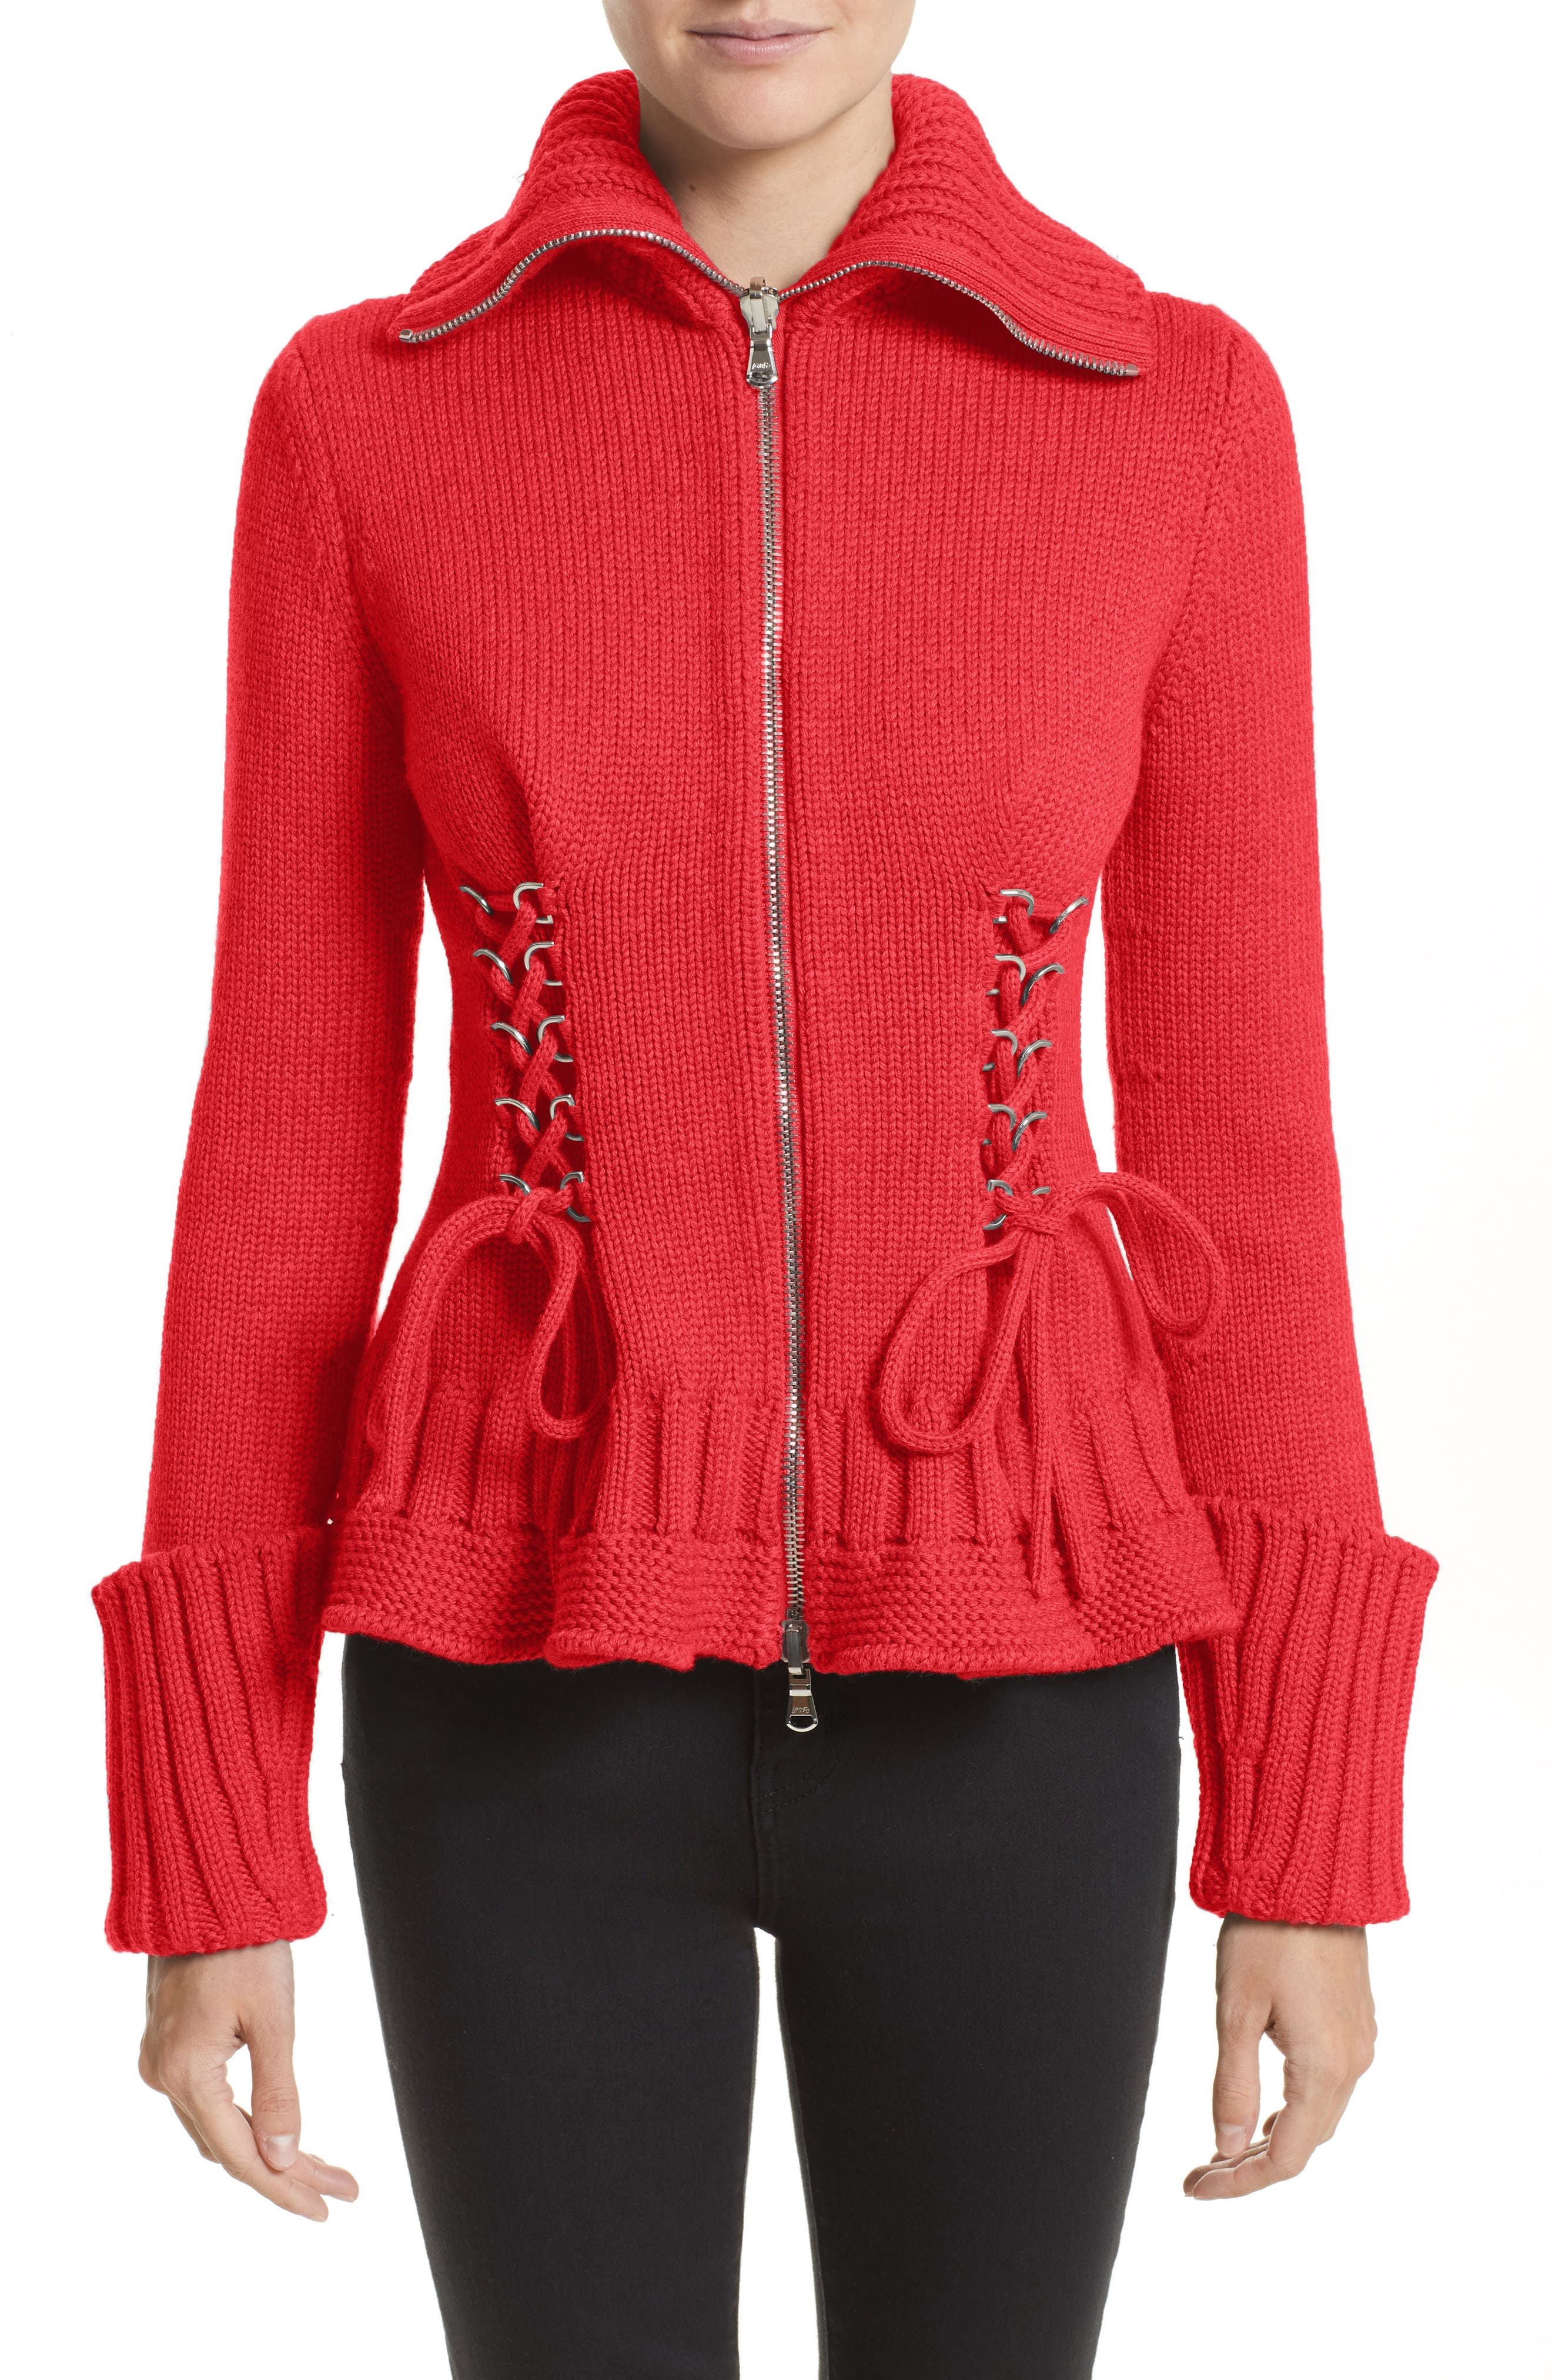 Alexander McQueen Lace-Up Wool Cardigan